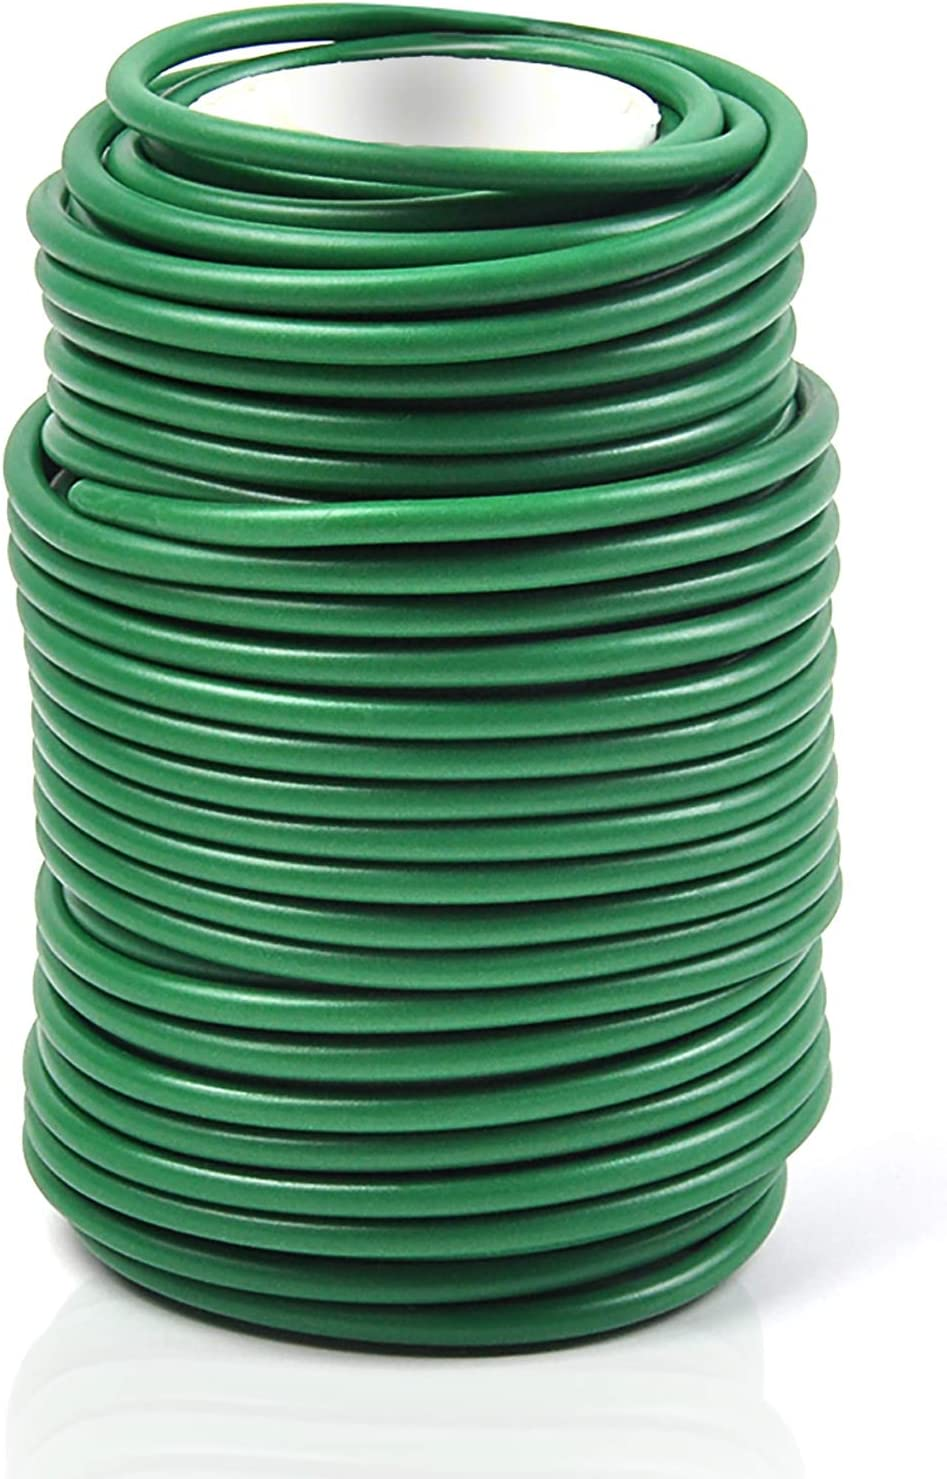 Decoroca Garden Flexible Tie, Tie Soft Twist Plant Ties 65.6' - Green Support Plant Vines, Stems & Stalks